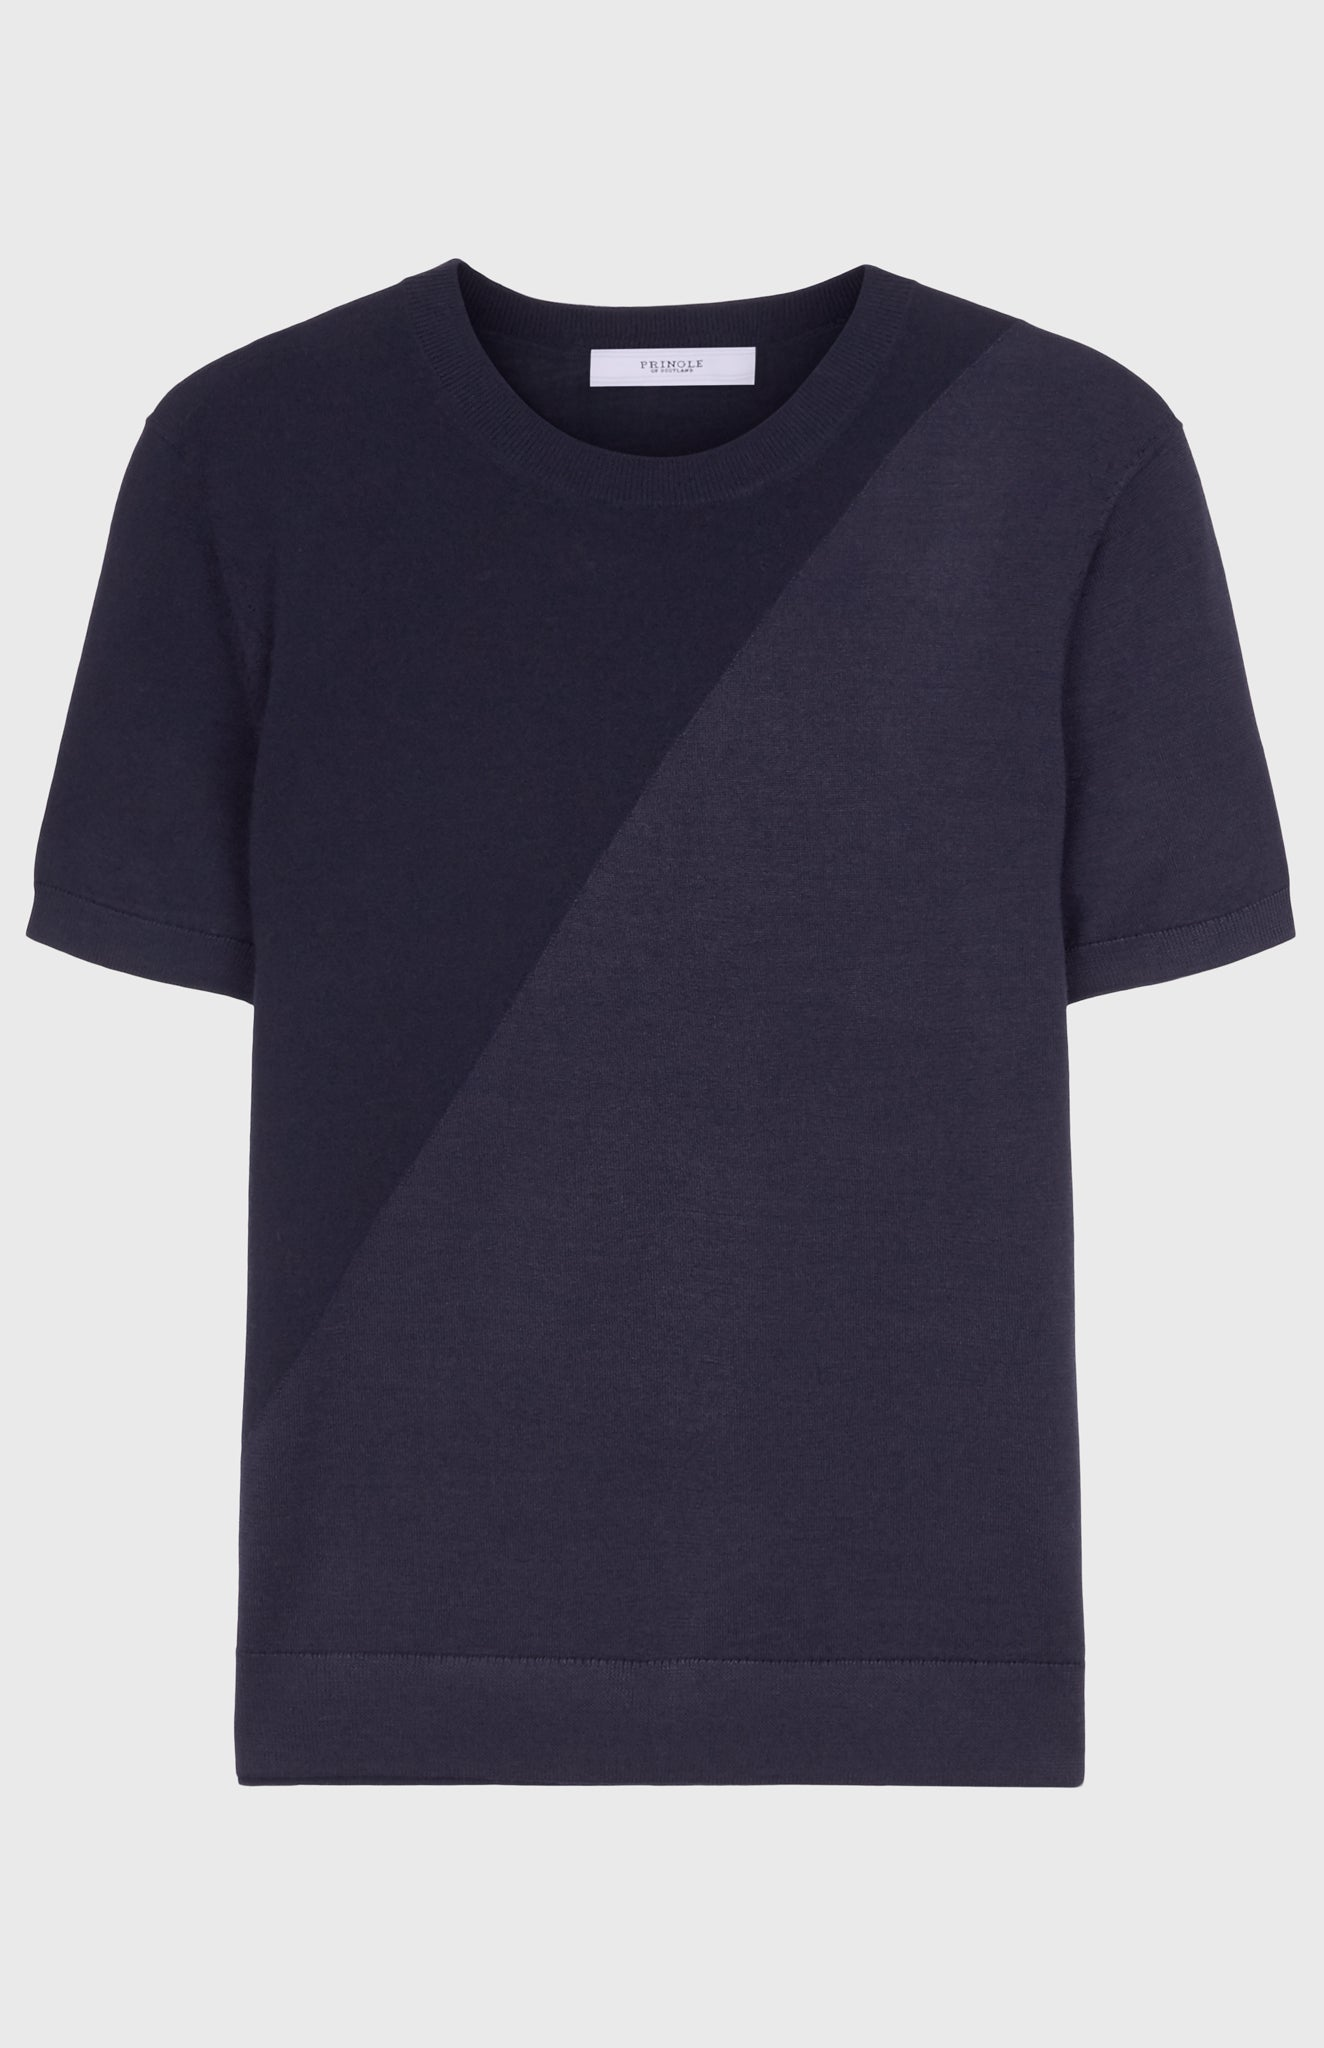 Women's Merino Silk T Shirt In Midnight